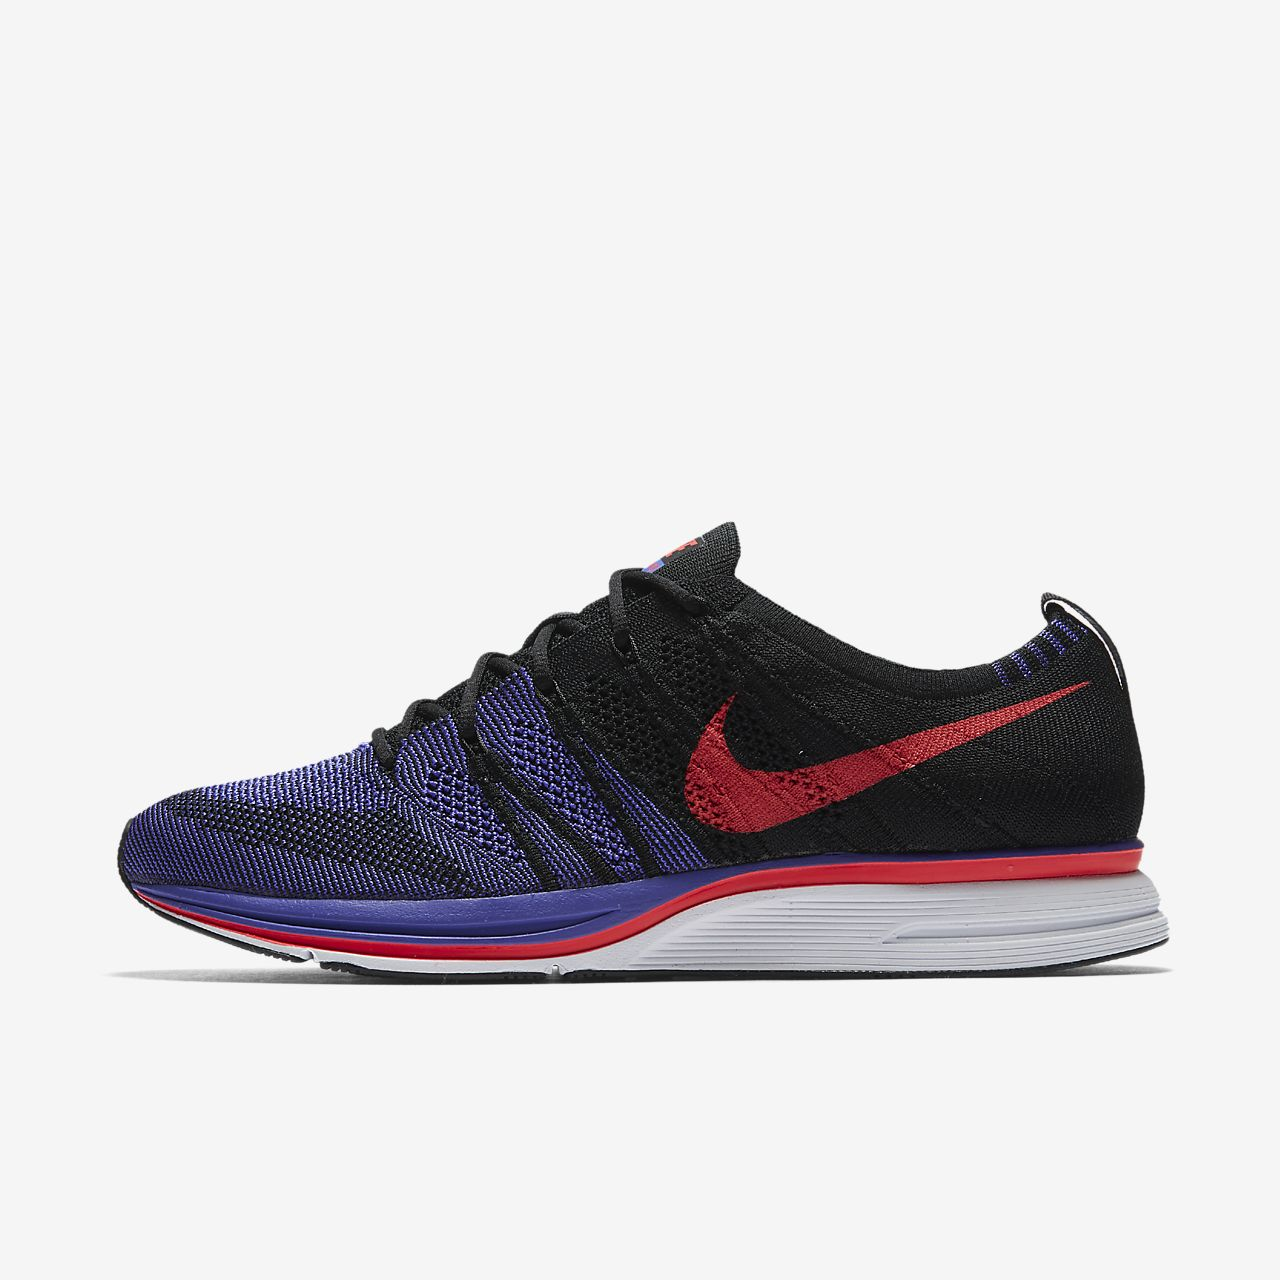 quality design 14702 2d6df ... Nike Flyknit Trainer Zapatillas - Unisex